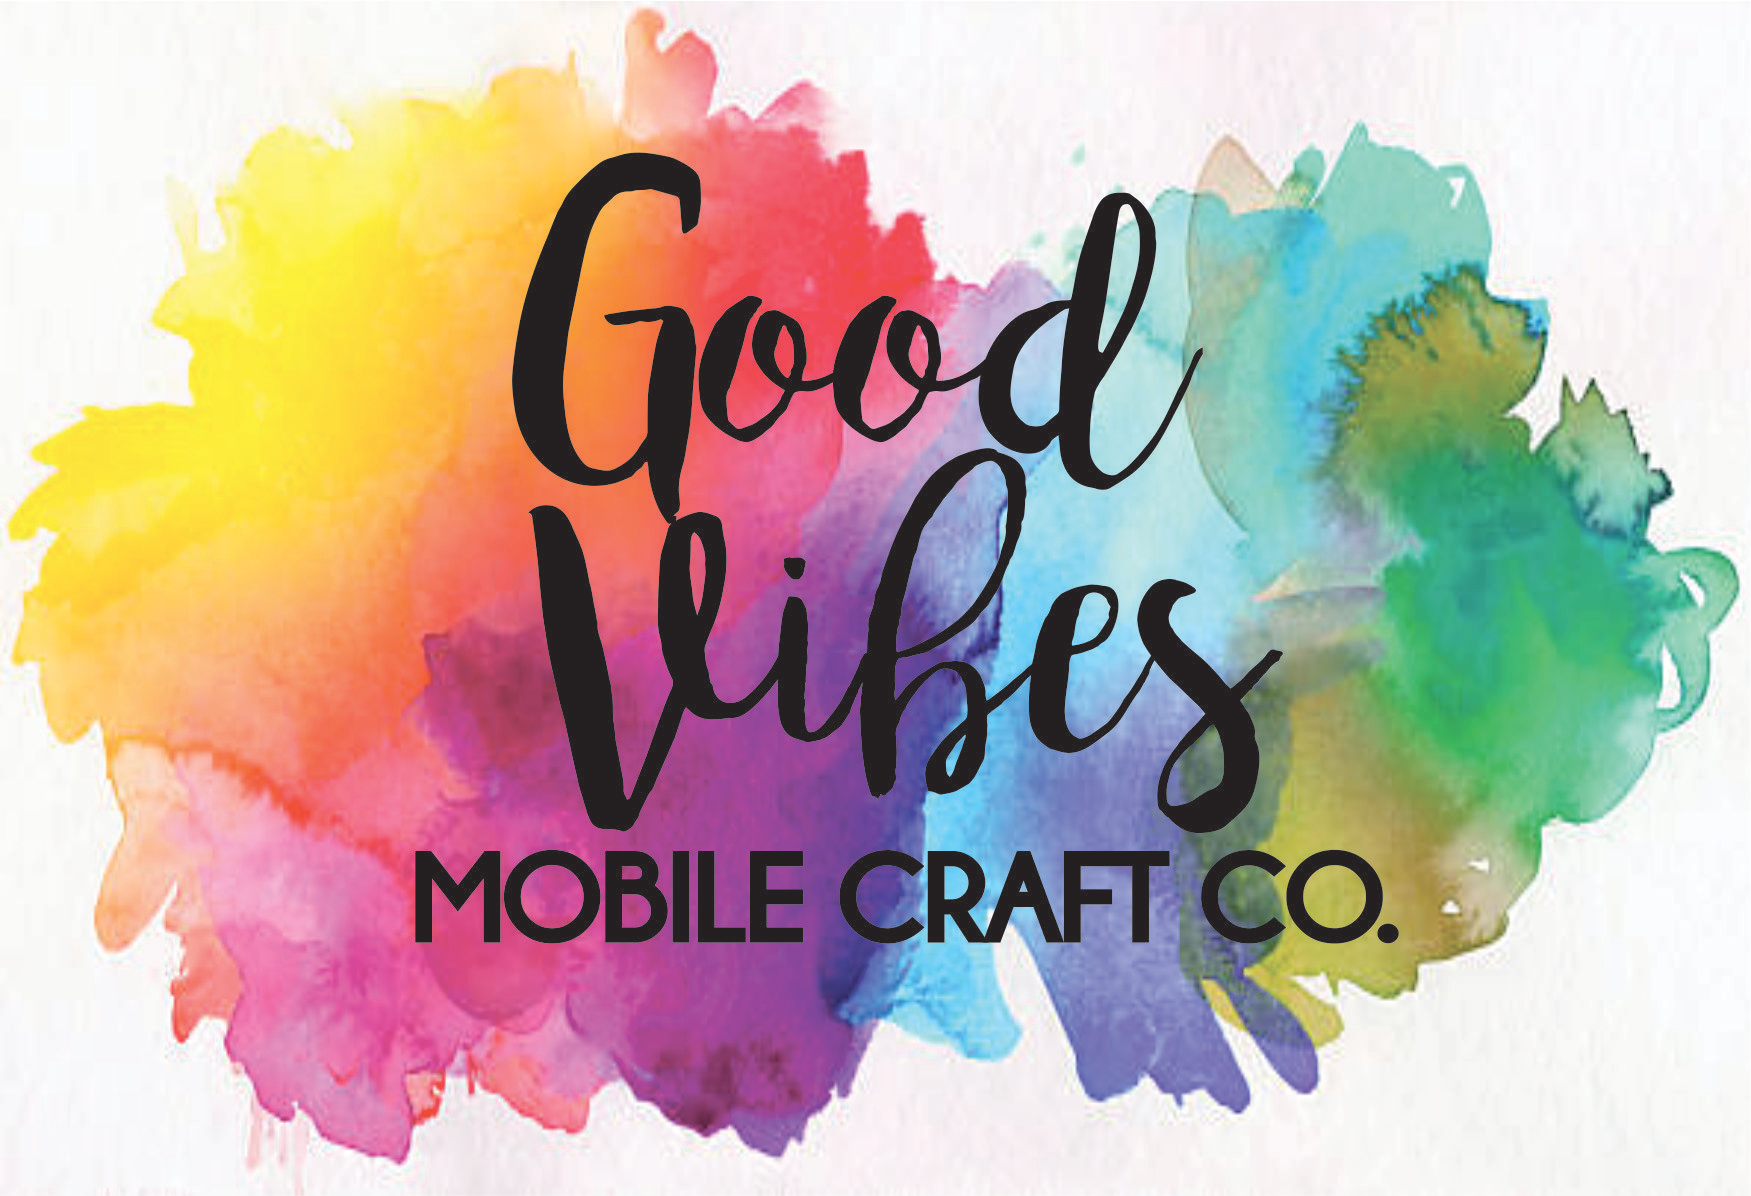 Paint A Sign Windsor Essex County Good Vibes Mobile Craft Co